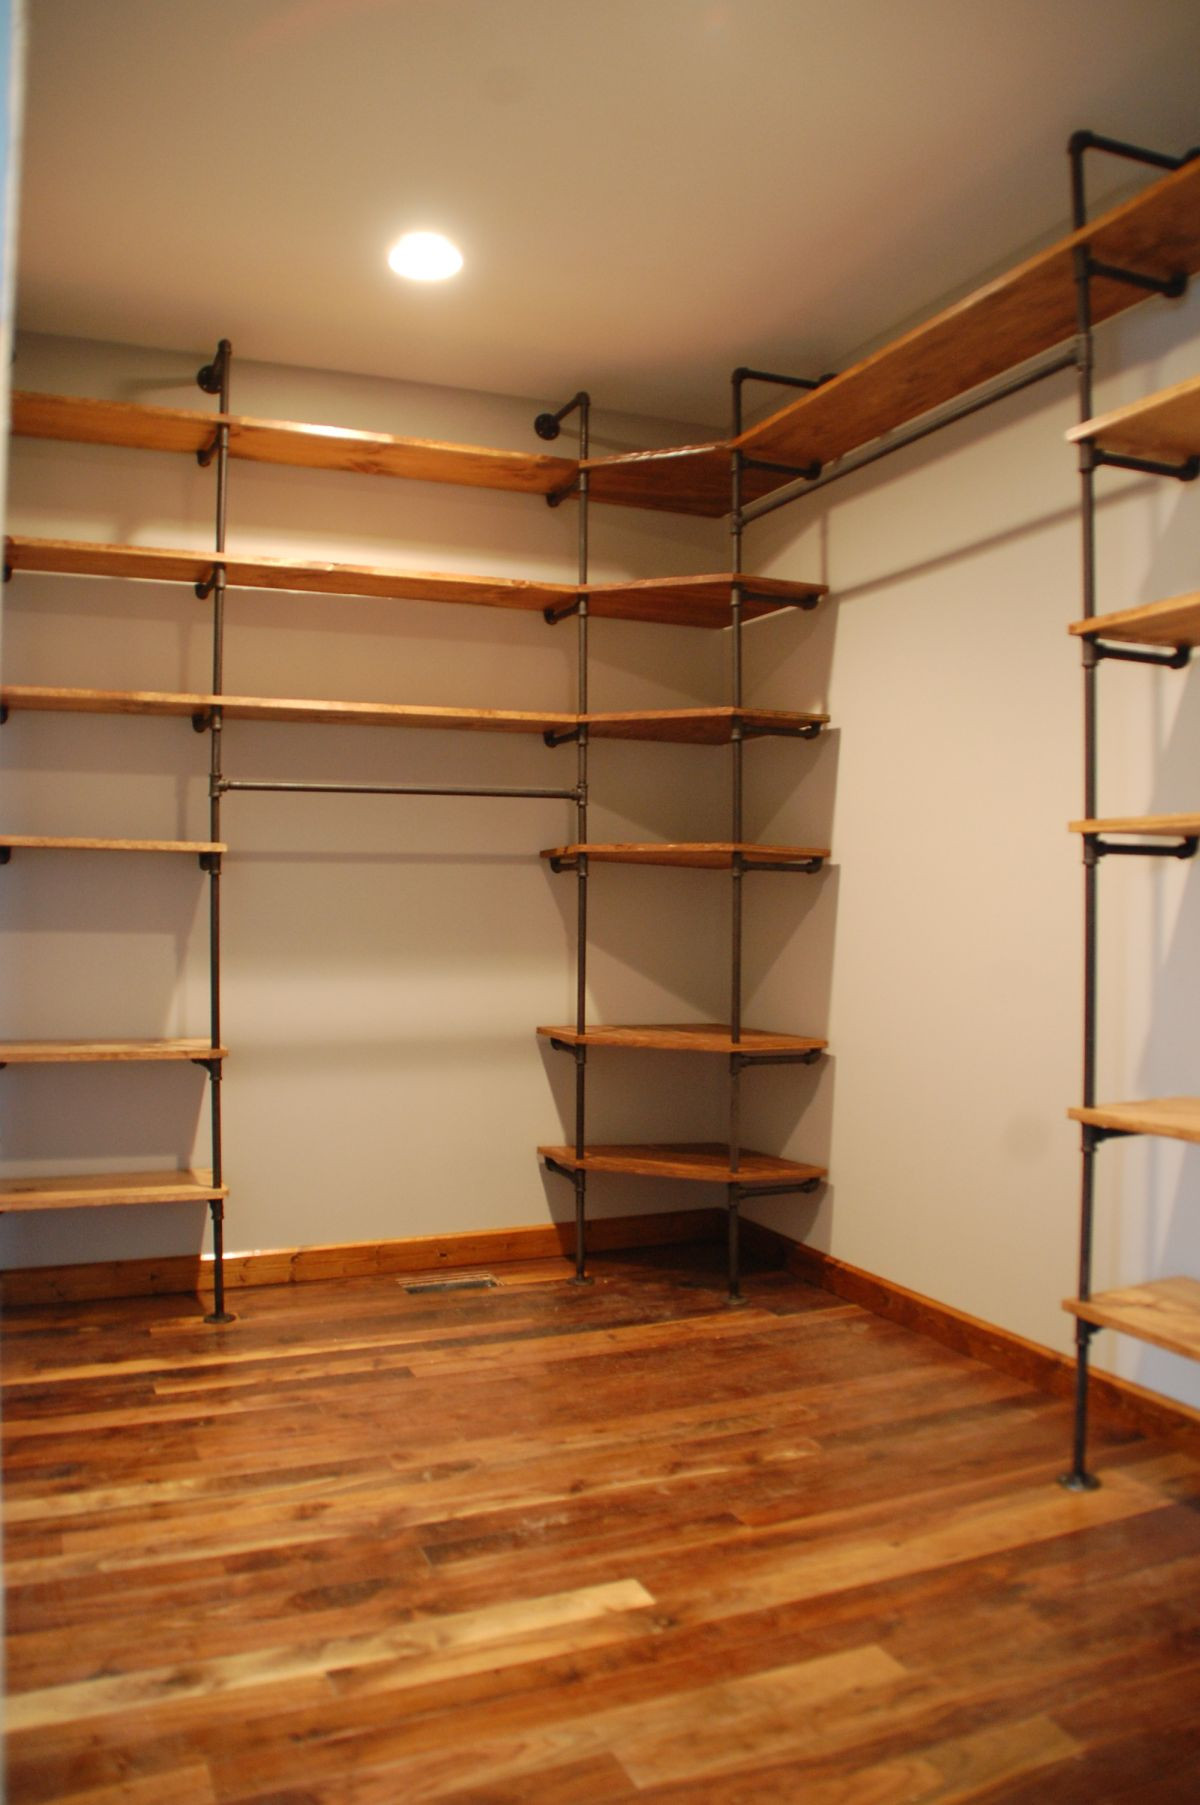 Best ideas about DIY Pipe Shelves . Save or Pin How To Customize A Closet For Improved Storage Capacity Now.